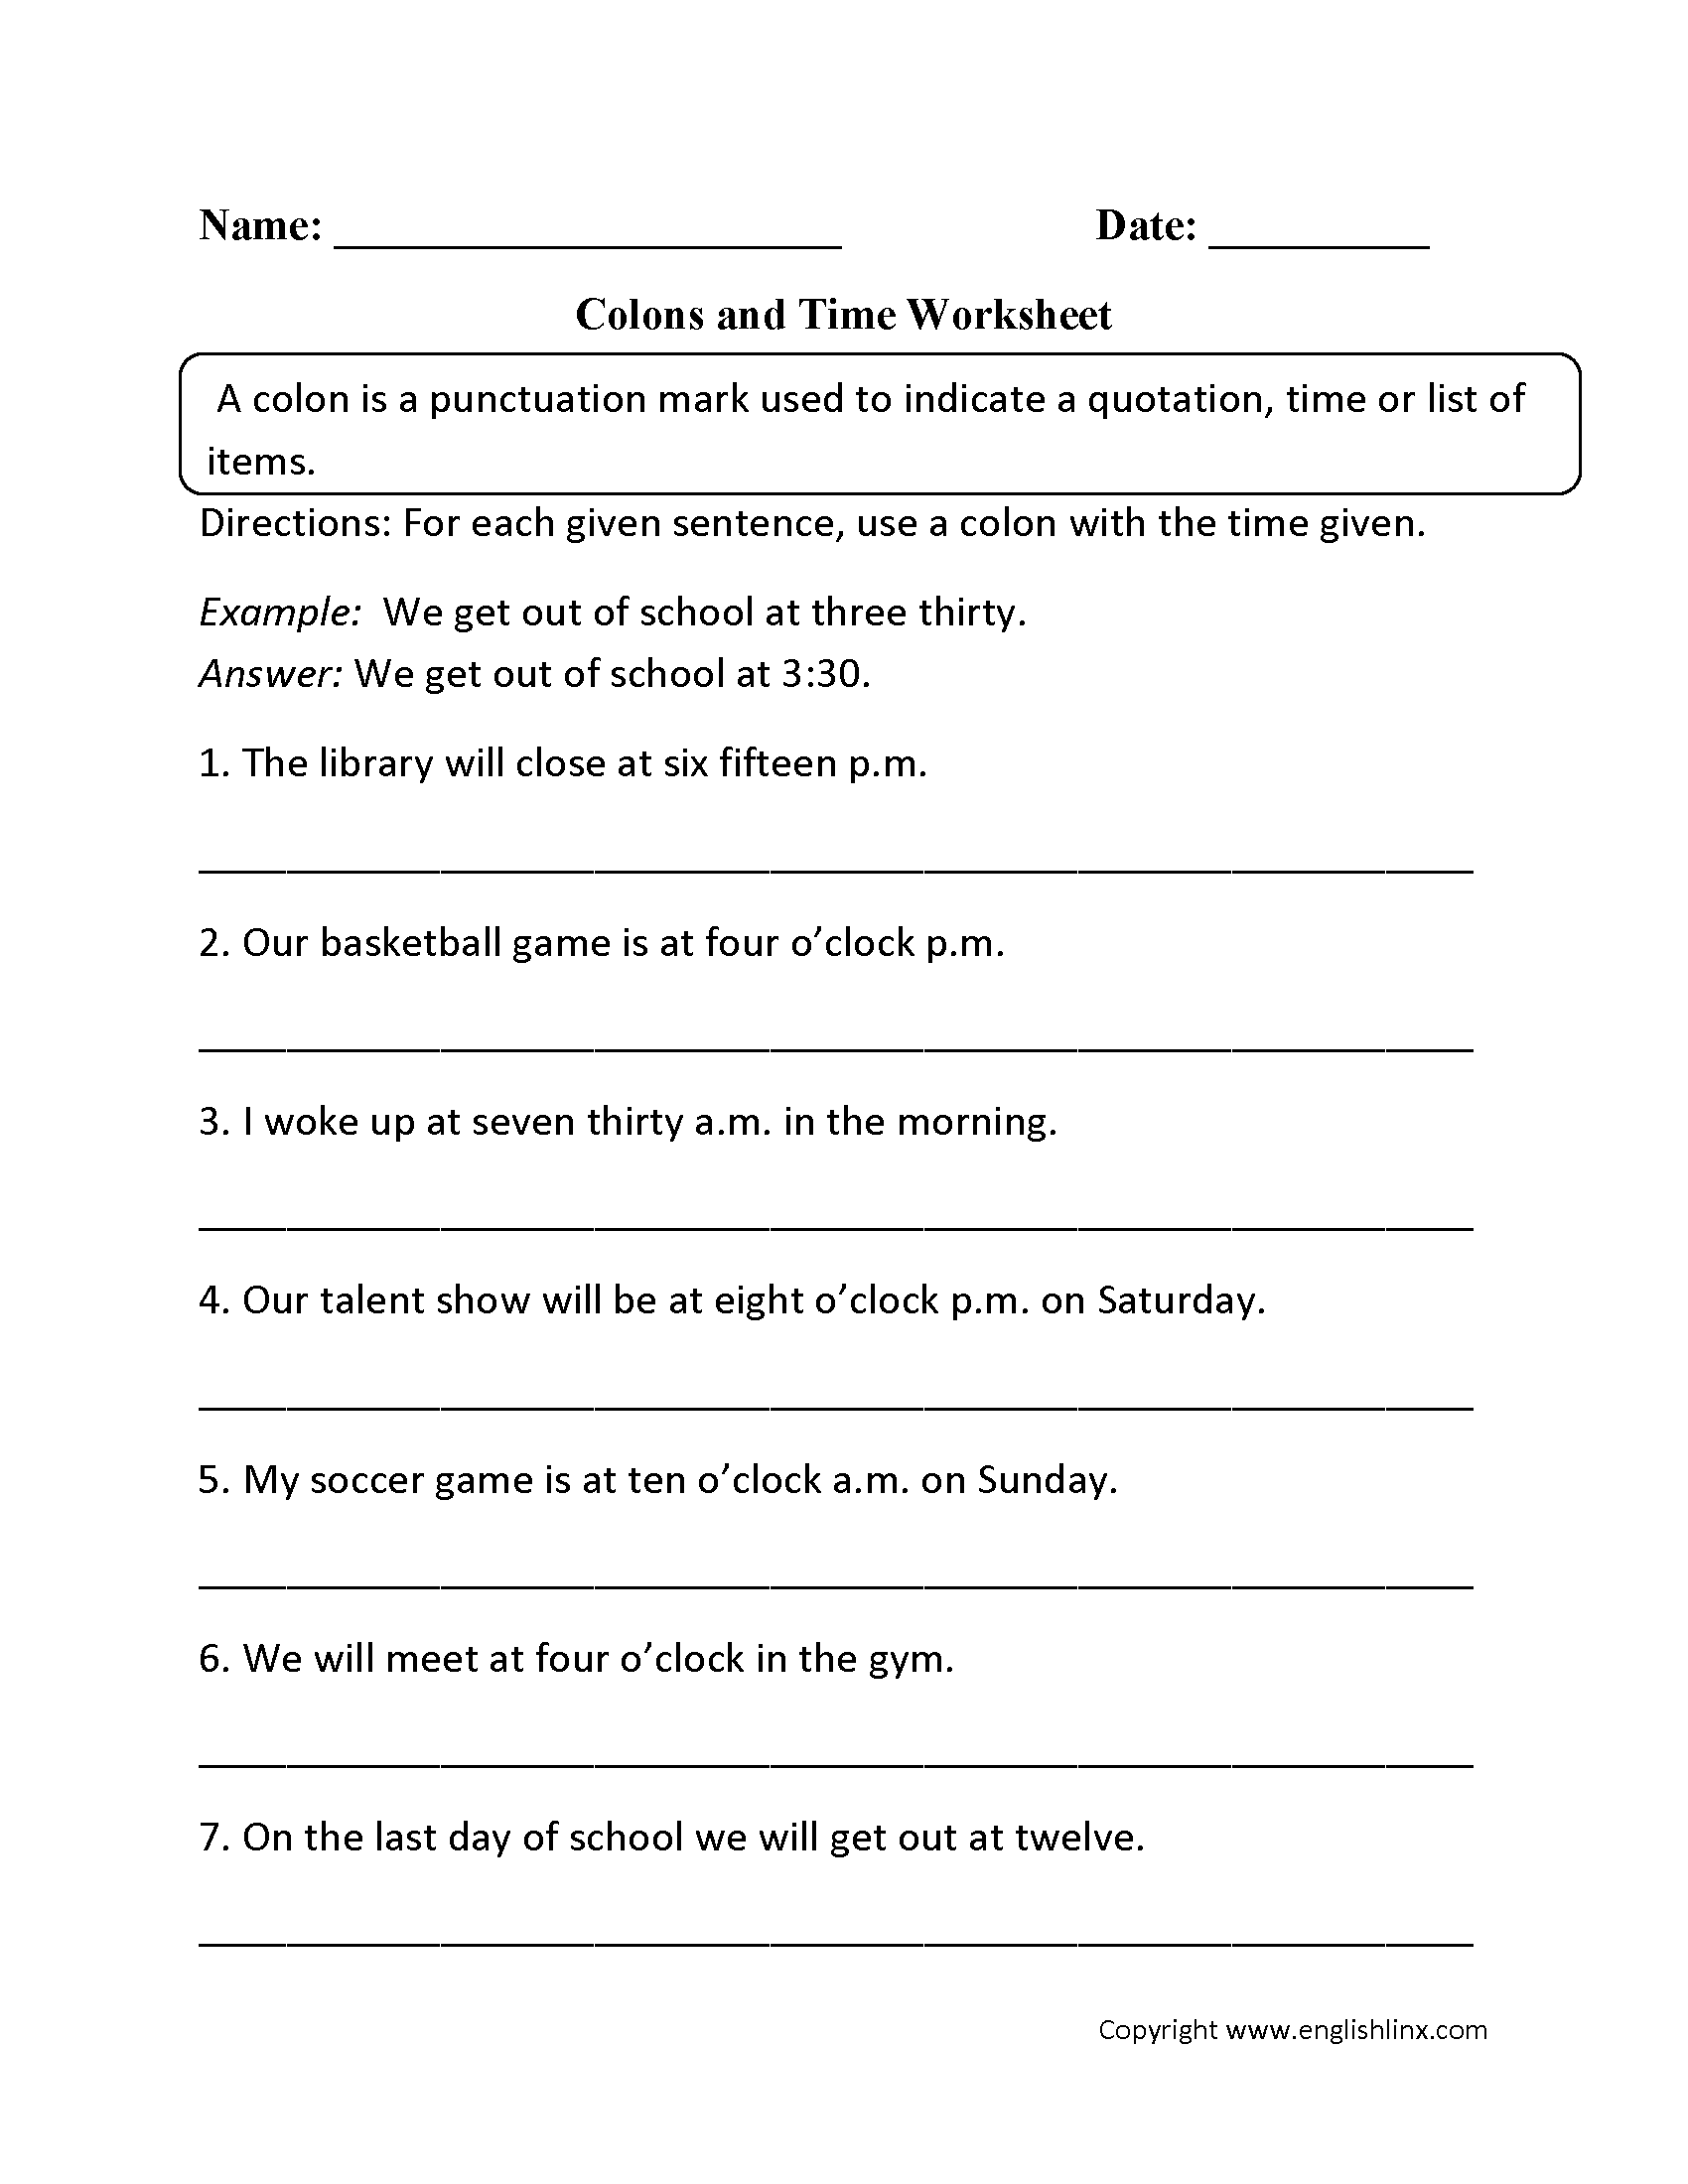 Worksheets Quotation Marks Worksheet grammar worksheets punctuation colon worksheets